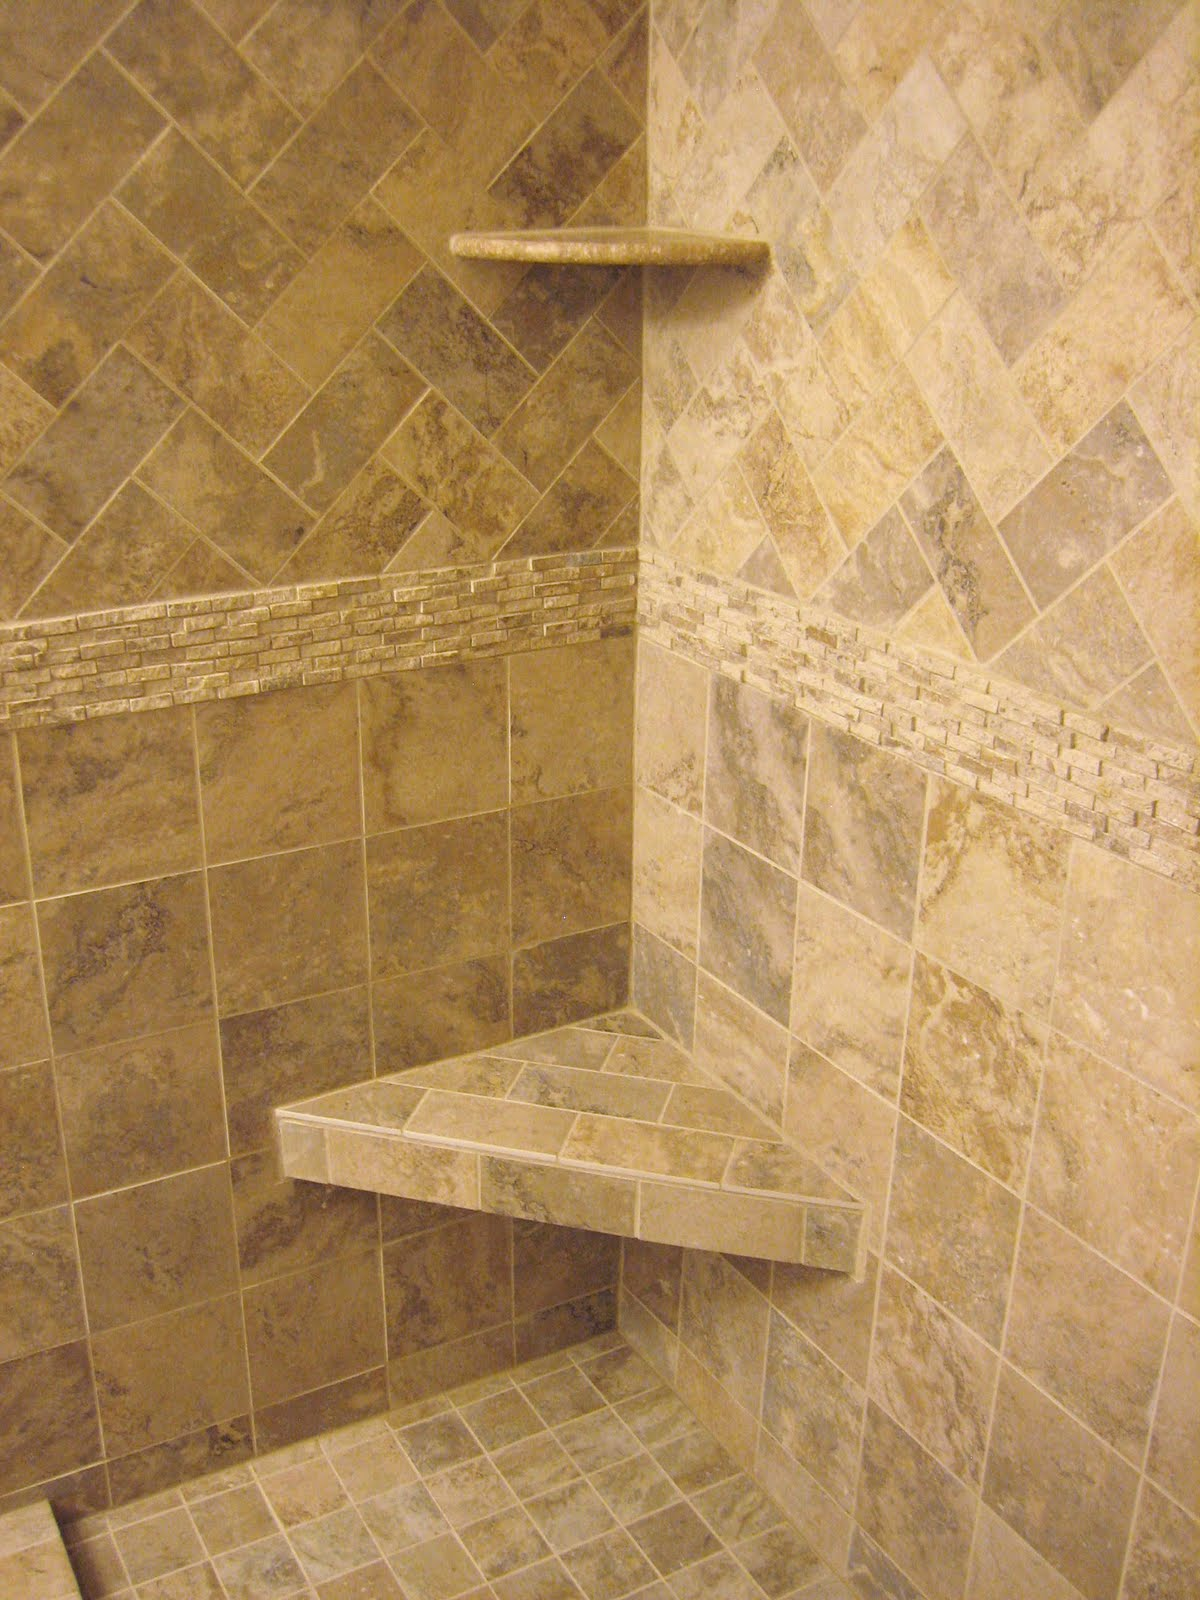 H winter showroom blog luxury master bath remodel athena for Bathroom tile ideas for small bathrooms pictures